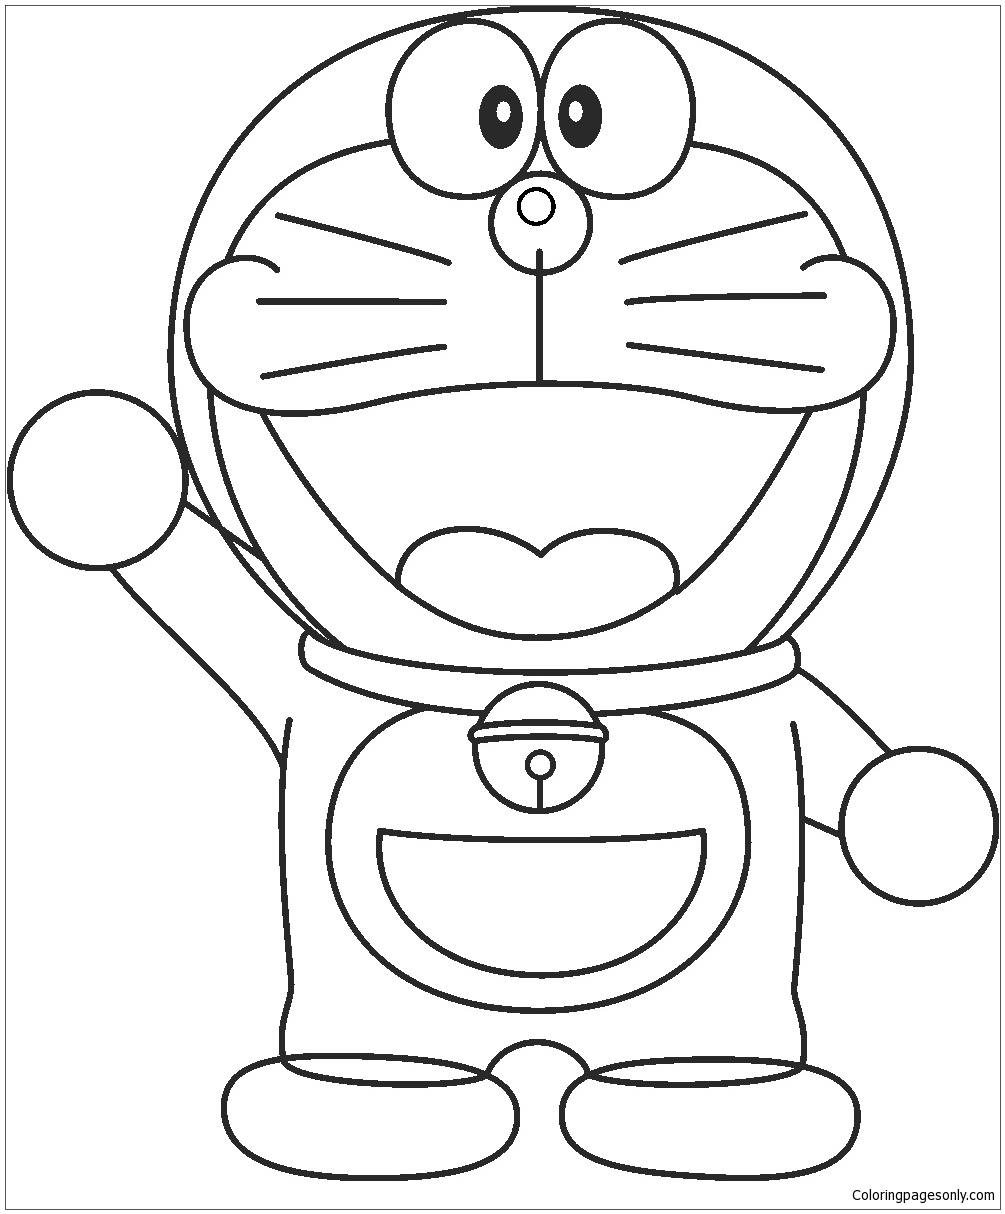 Doraemon Drawing For Kids Coloring Page Free Coloring